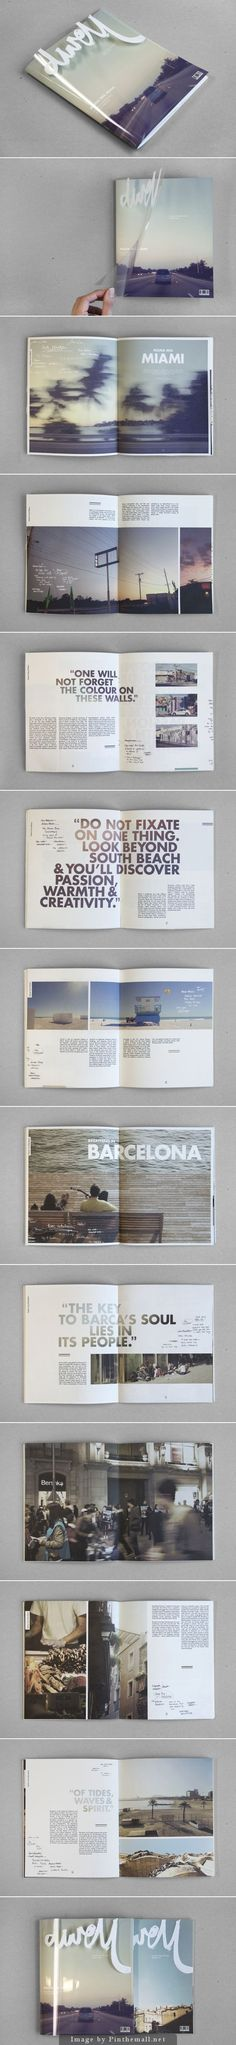 Graphic design for 'Dwell - Coastal Cities Revisited' by Sidney Lim YX // Editorial design inspiration